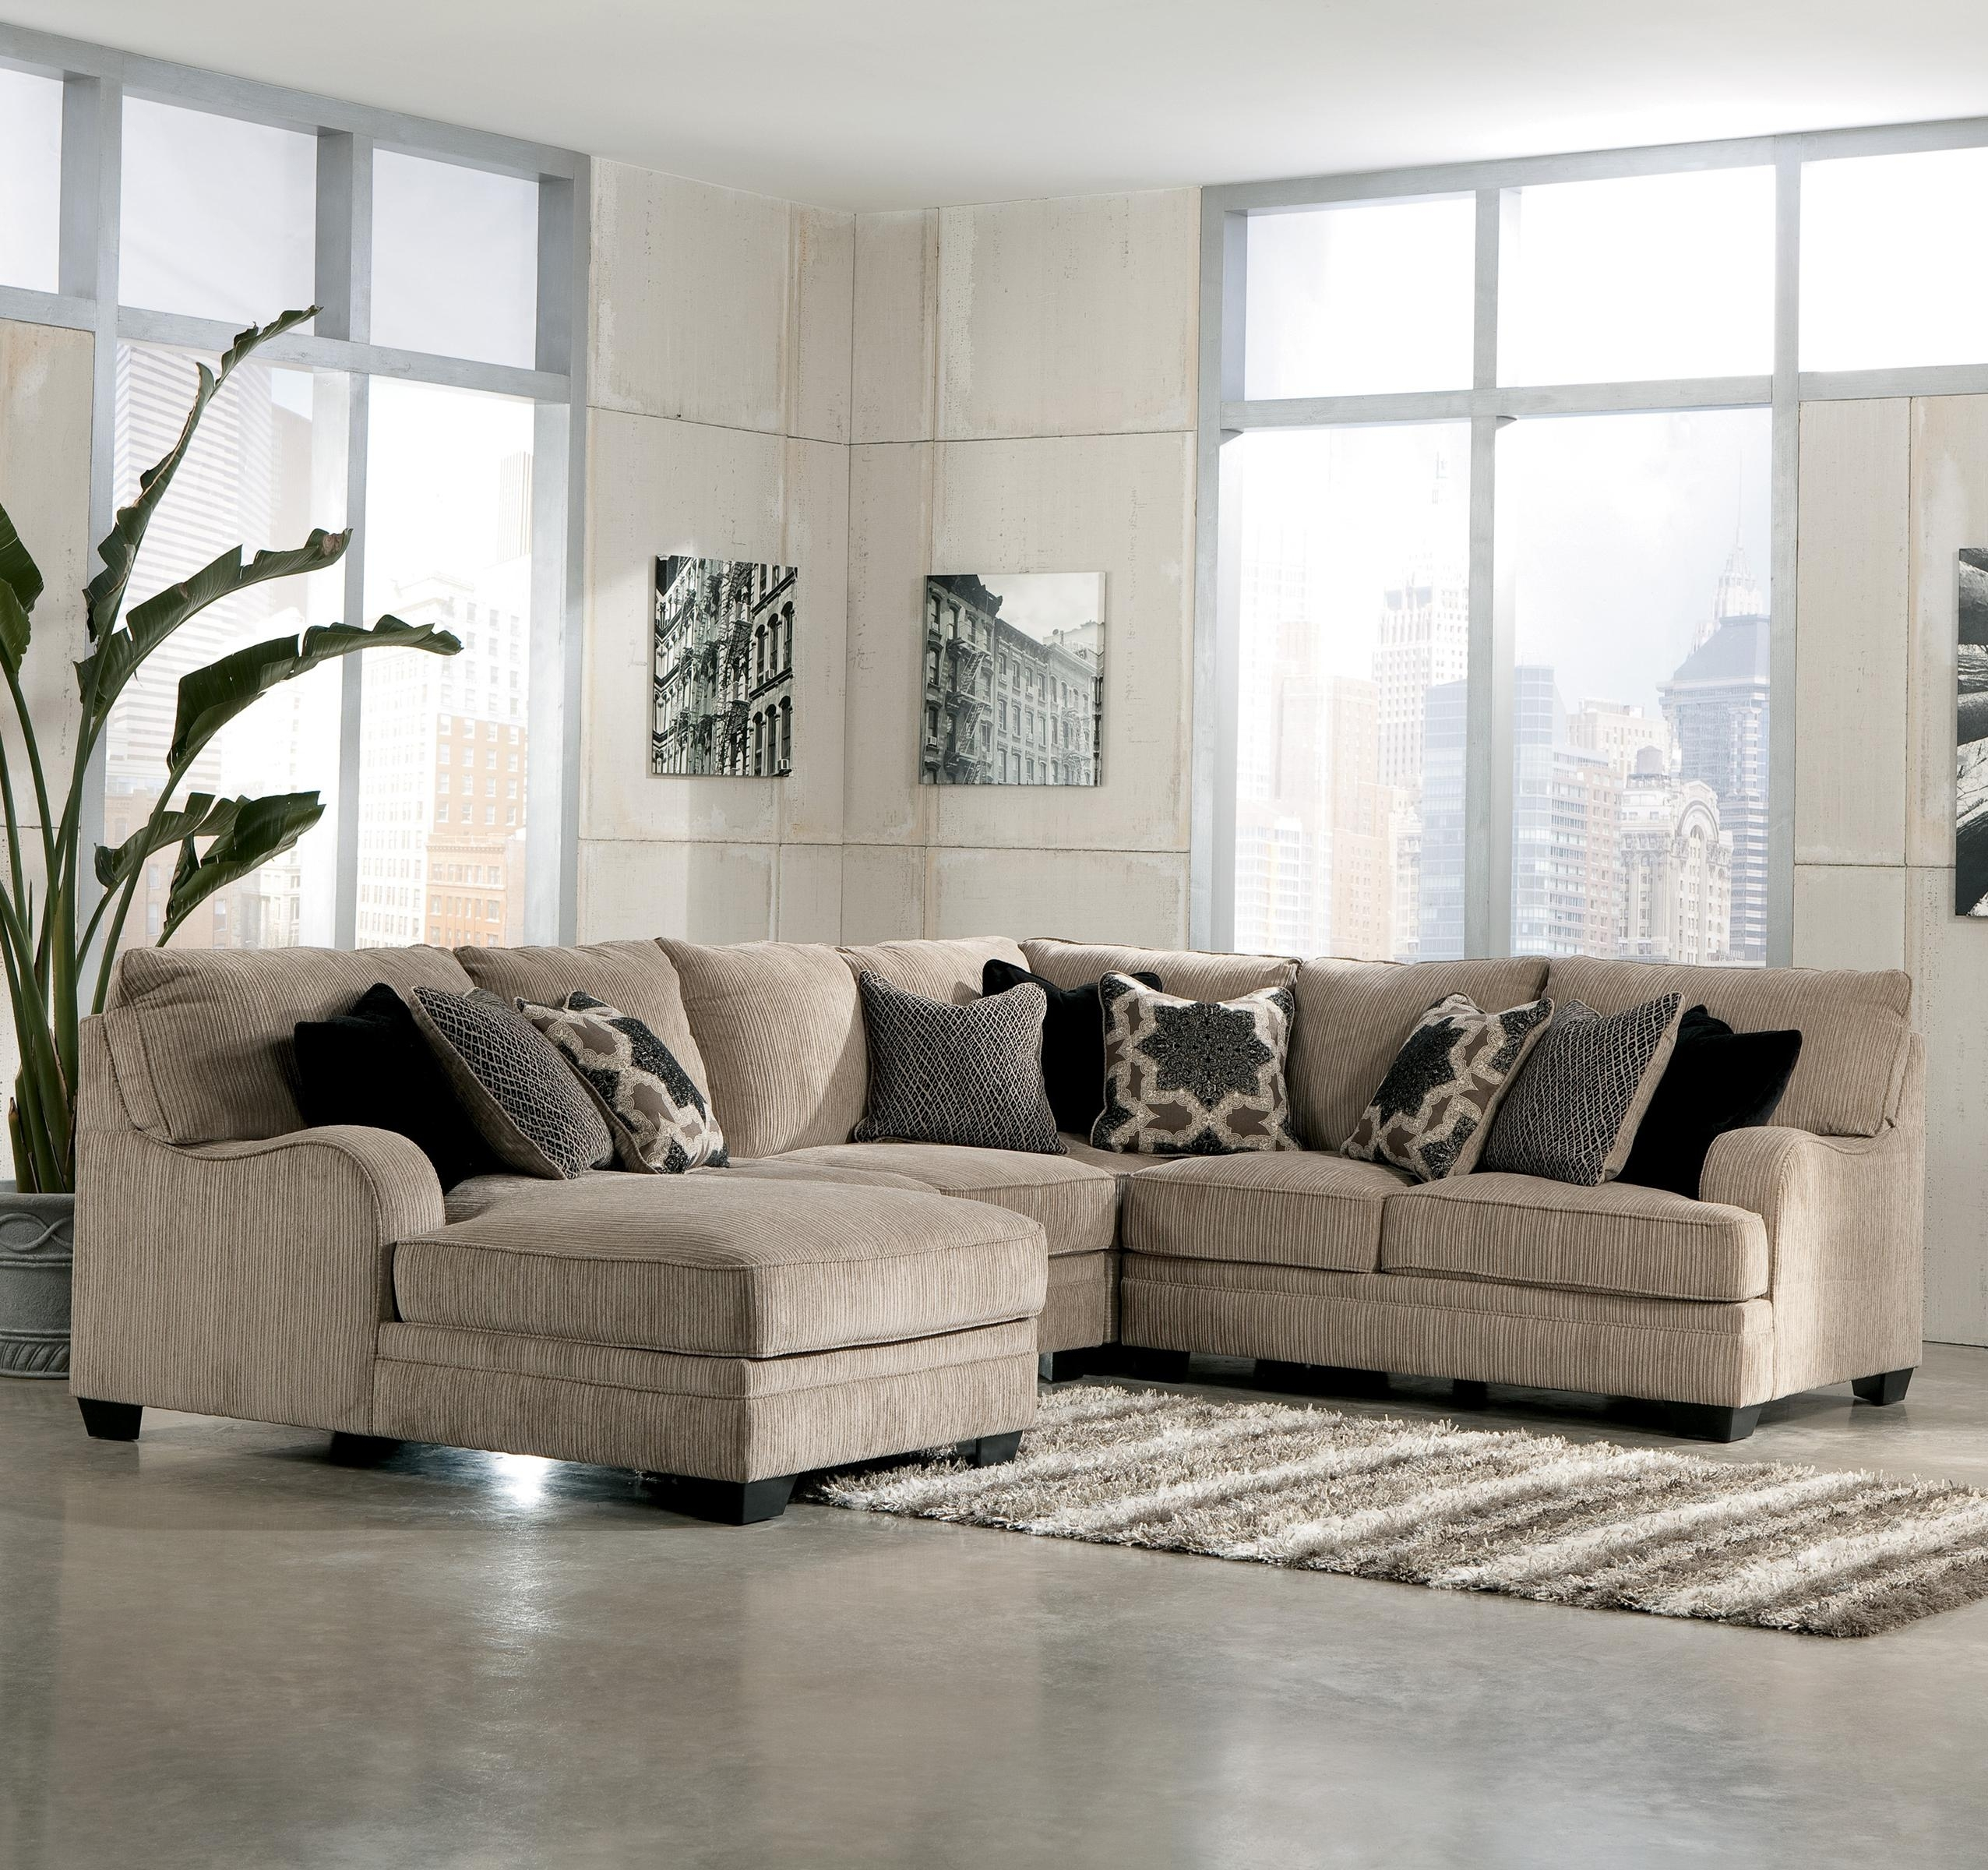 Signature Designashley Katisha – Platinum 4 Piece Sectional Sofa For Killeen Tx Sectional Sofas (View 9 of 10)